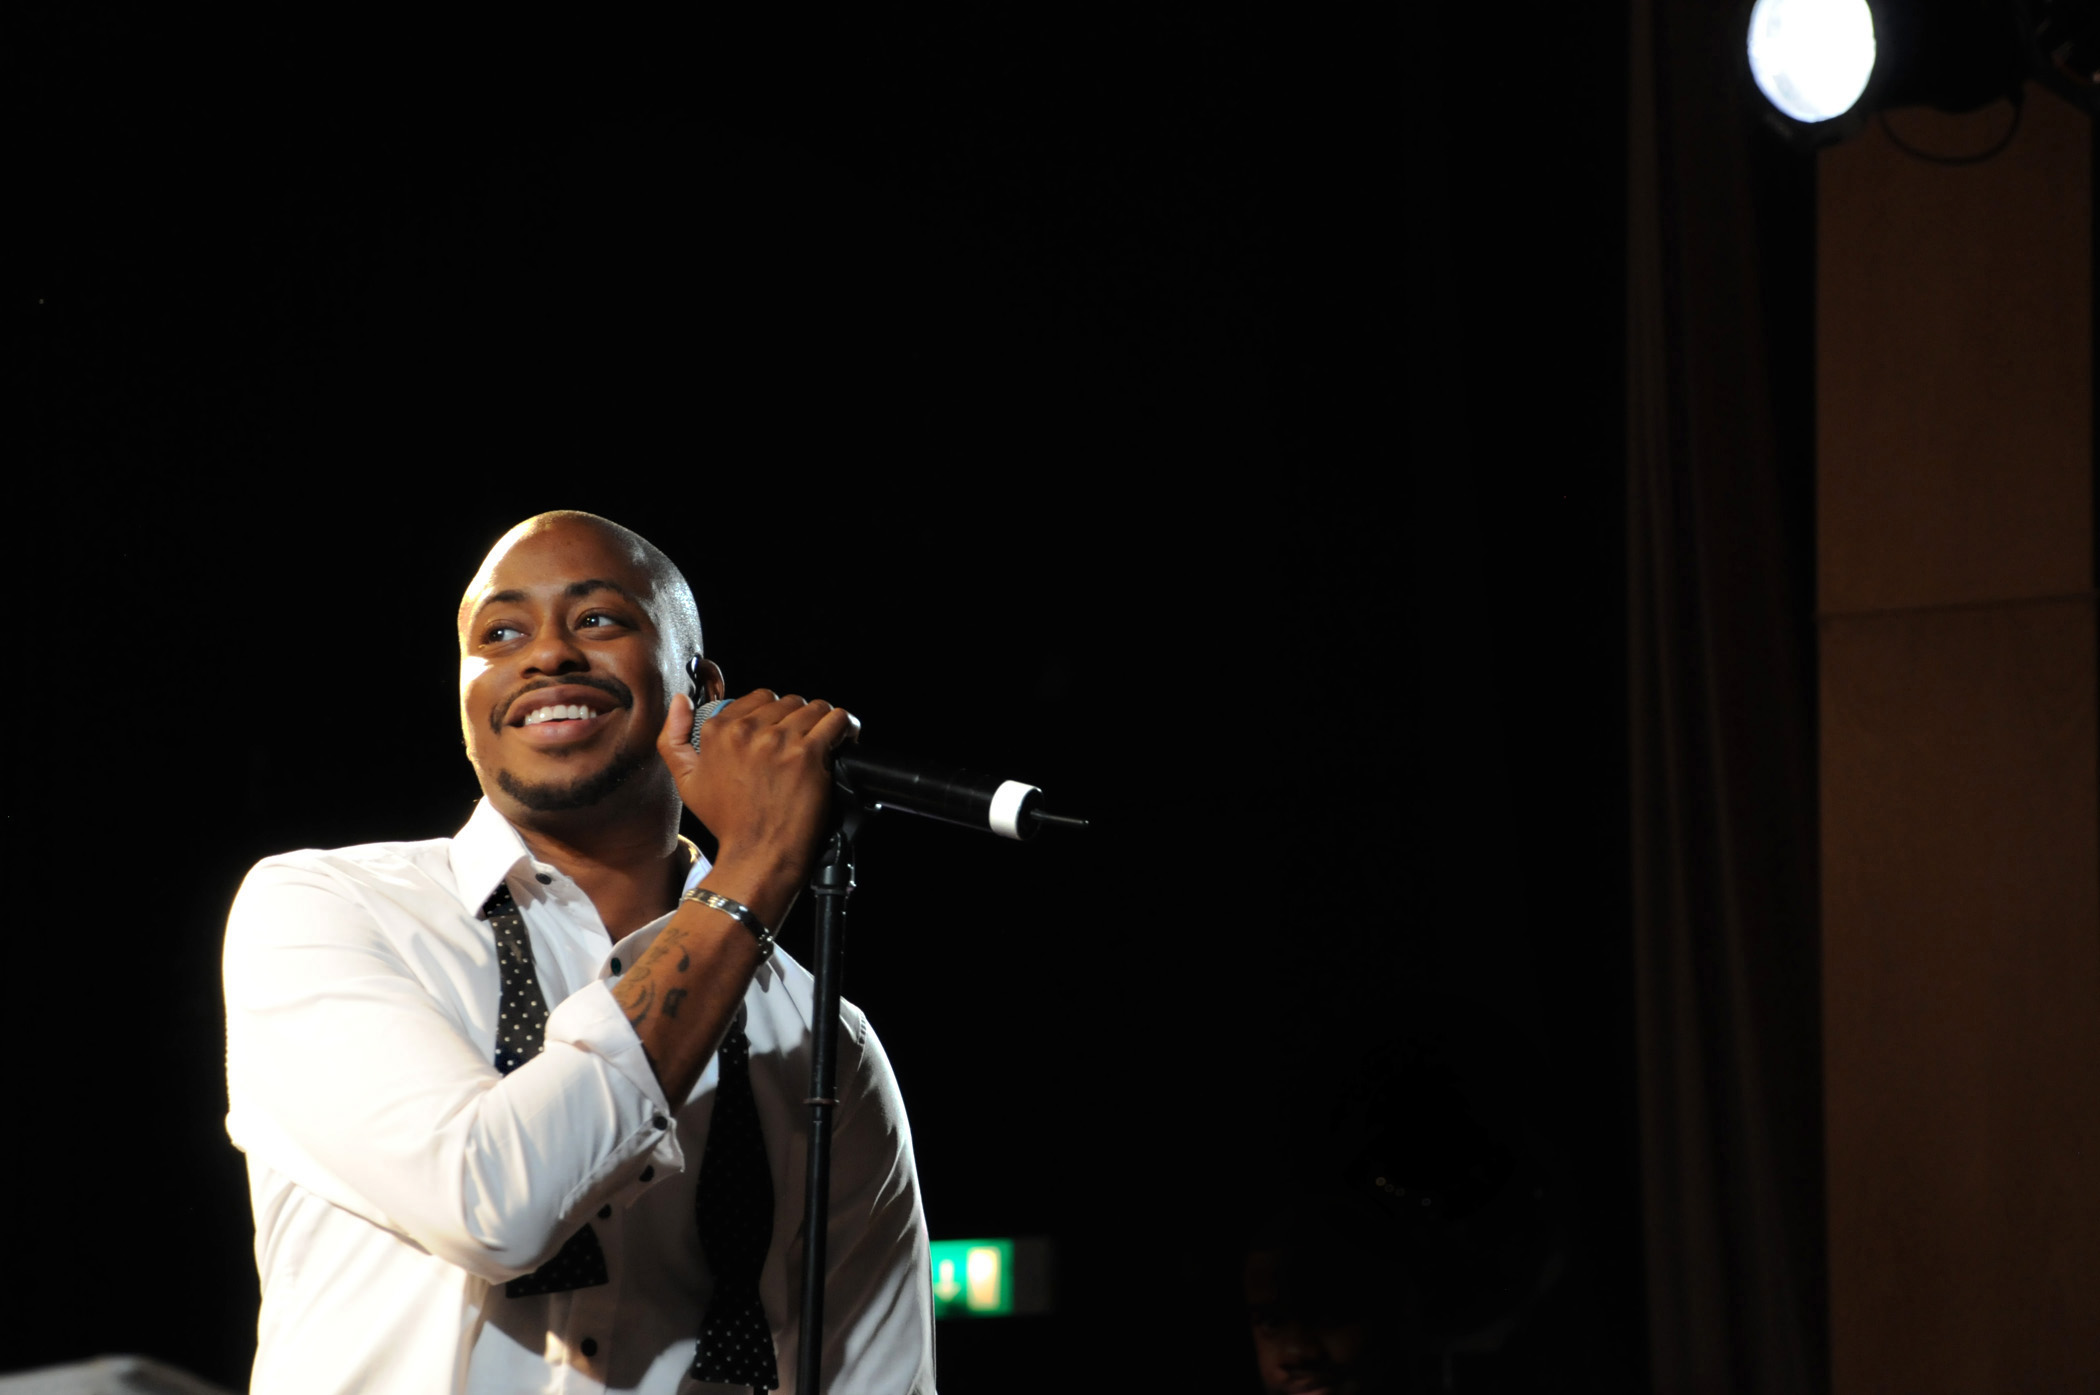 Raheem DeVaughn and his extremely hot eyes and smile OMFG.jpg